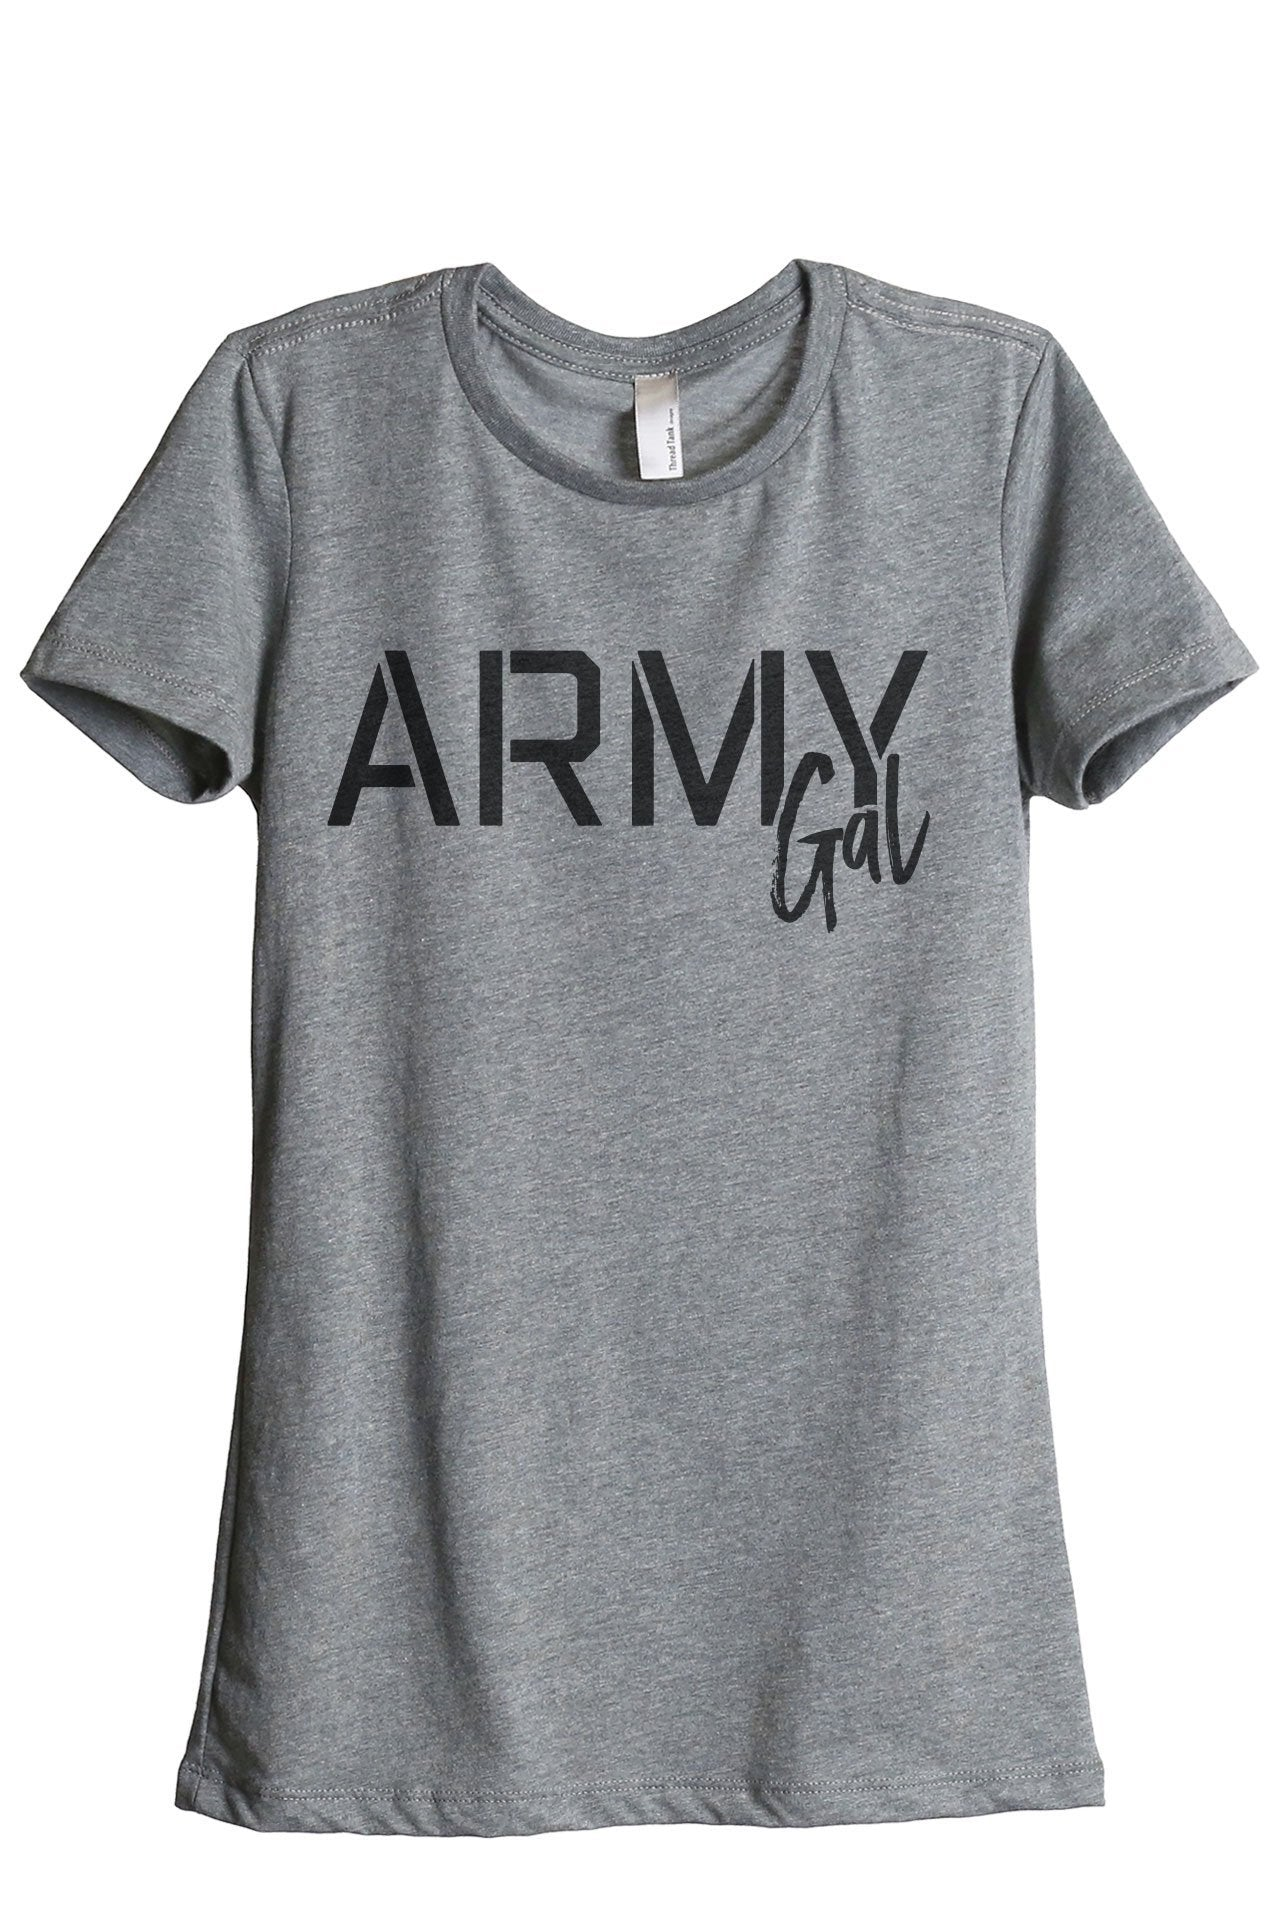 Army Gal Women's Relaxed Crewneck T-Shirt Top Tee Heather Grey